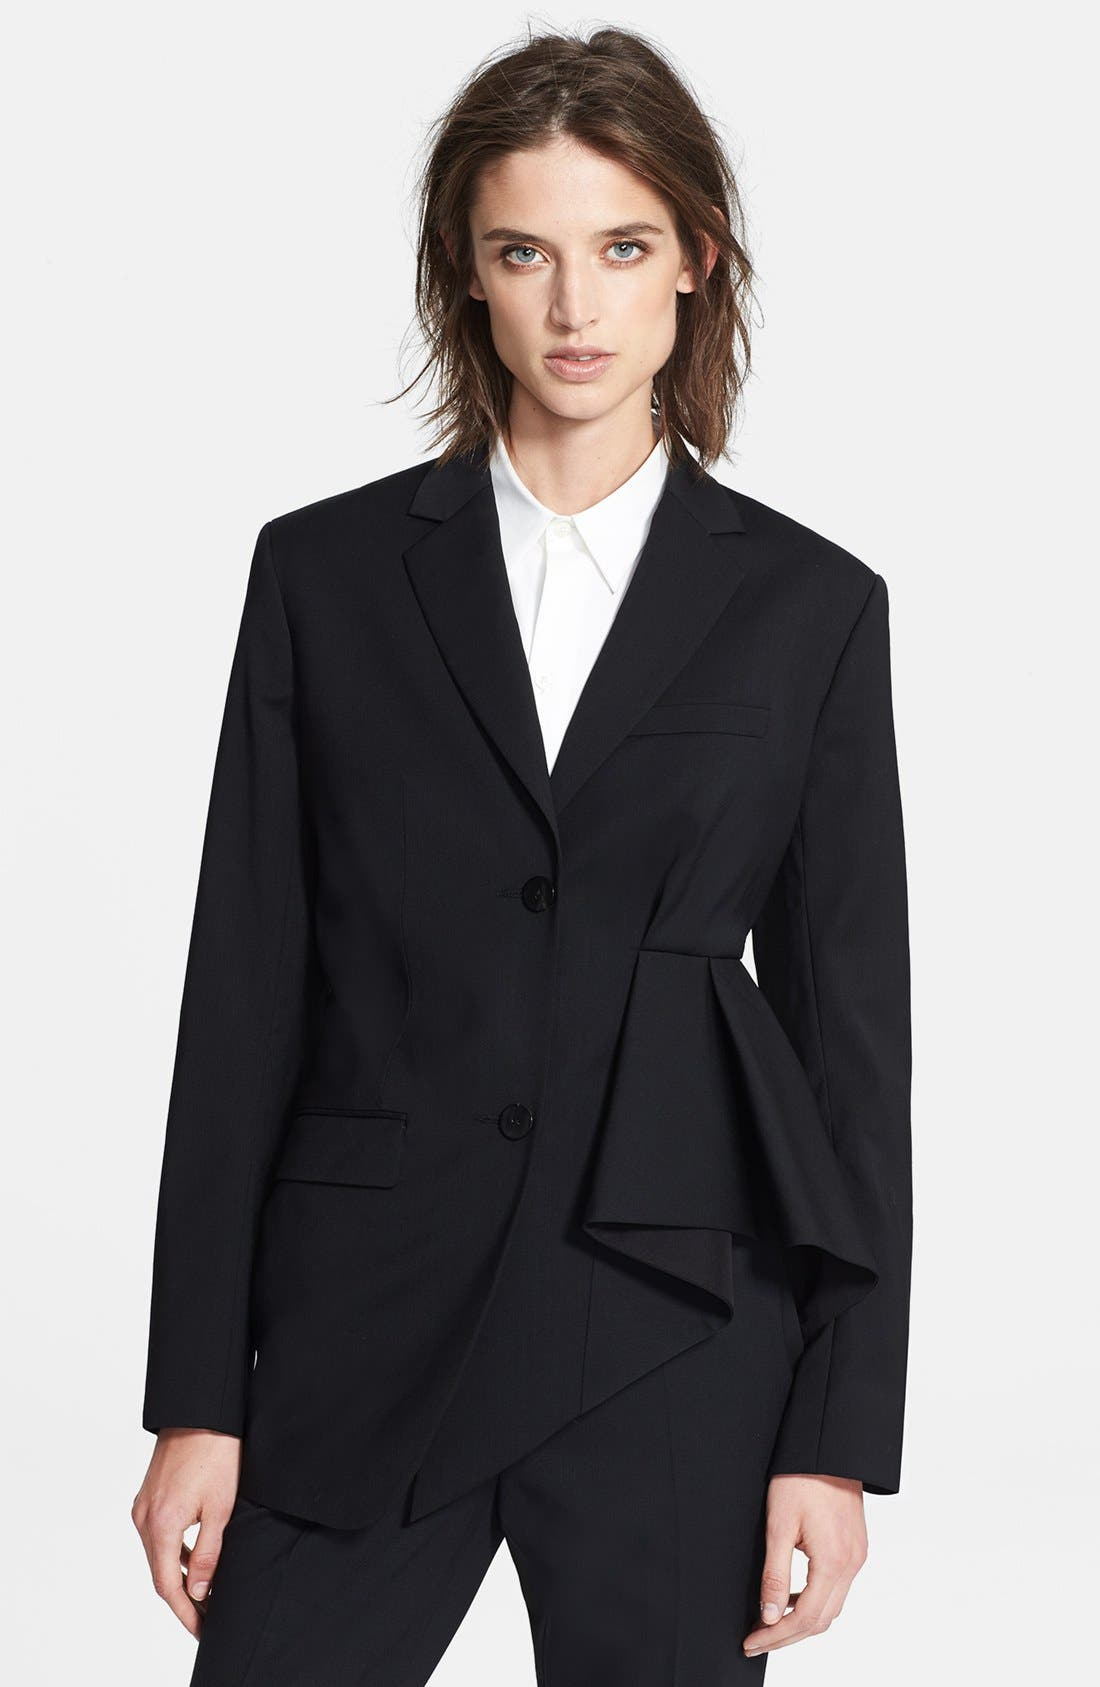 Alternate Image 1 Selected - Theory 'Jester' Wool Blend Jacket